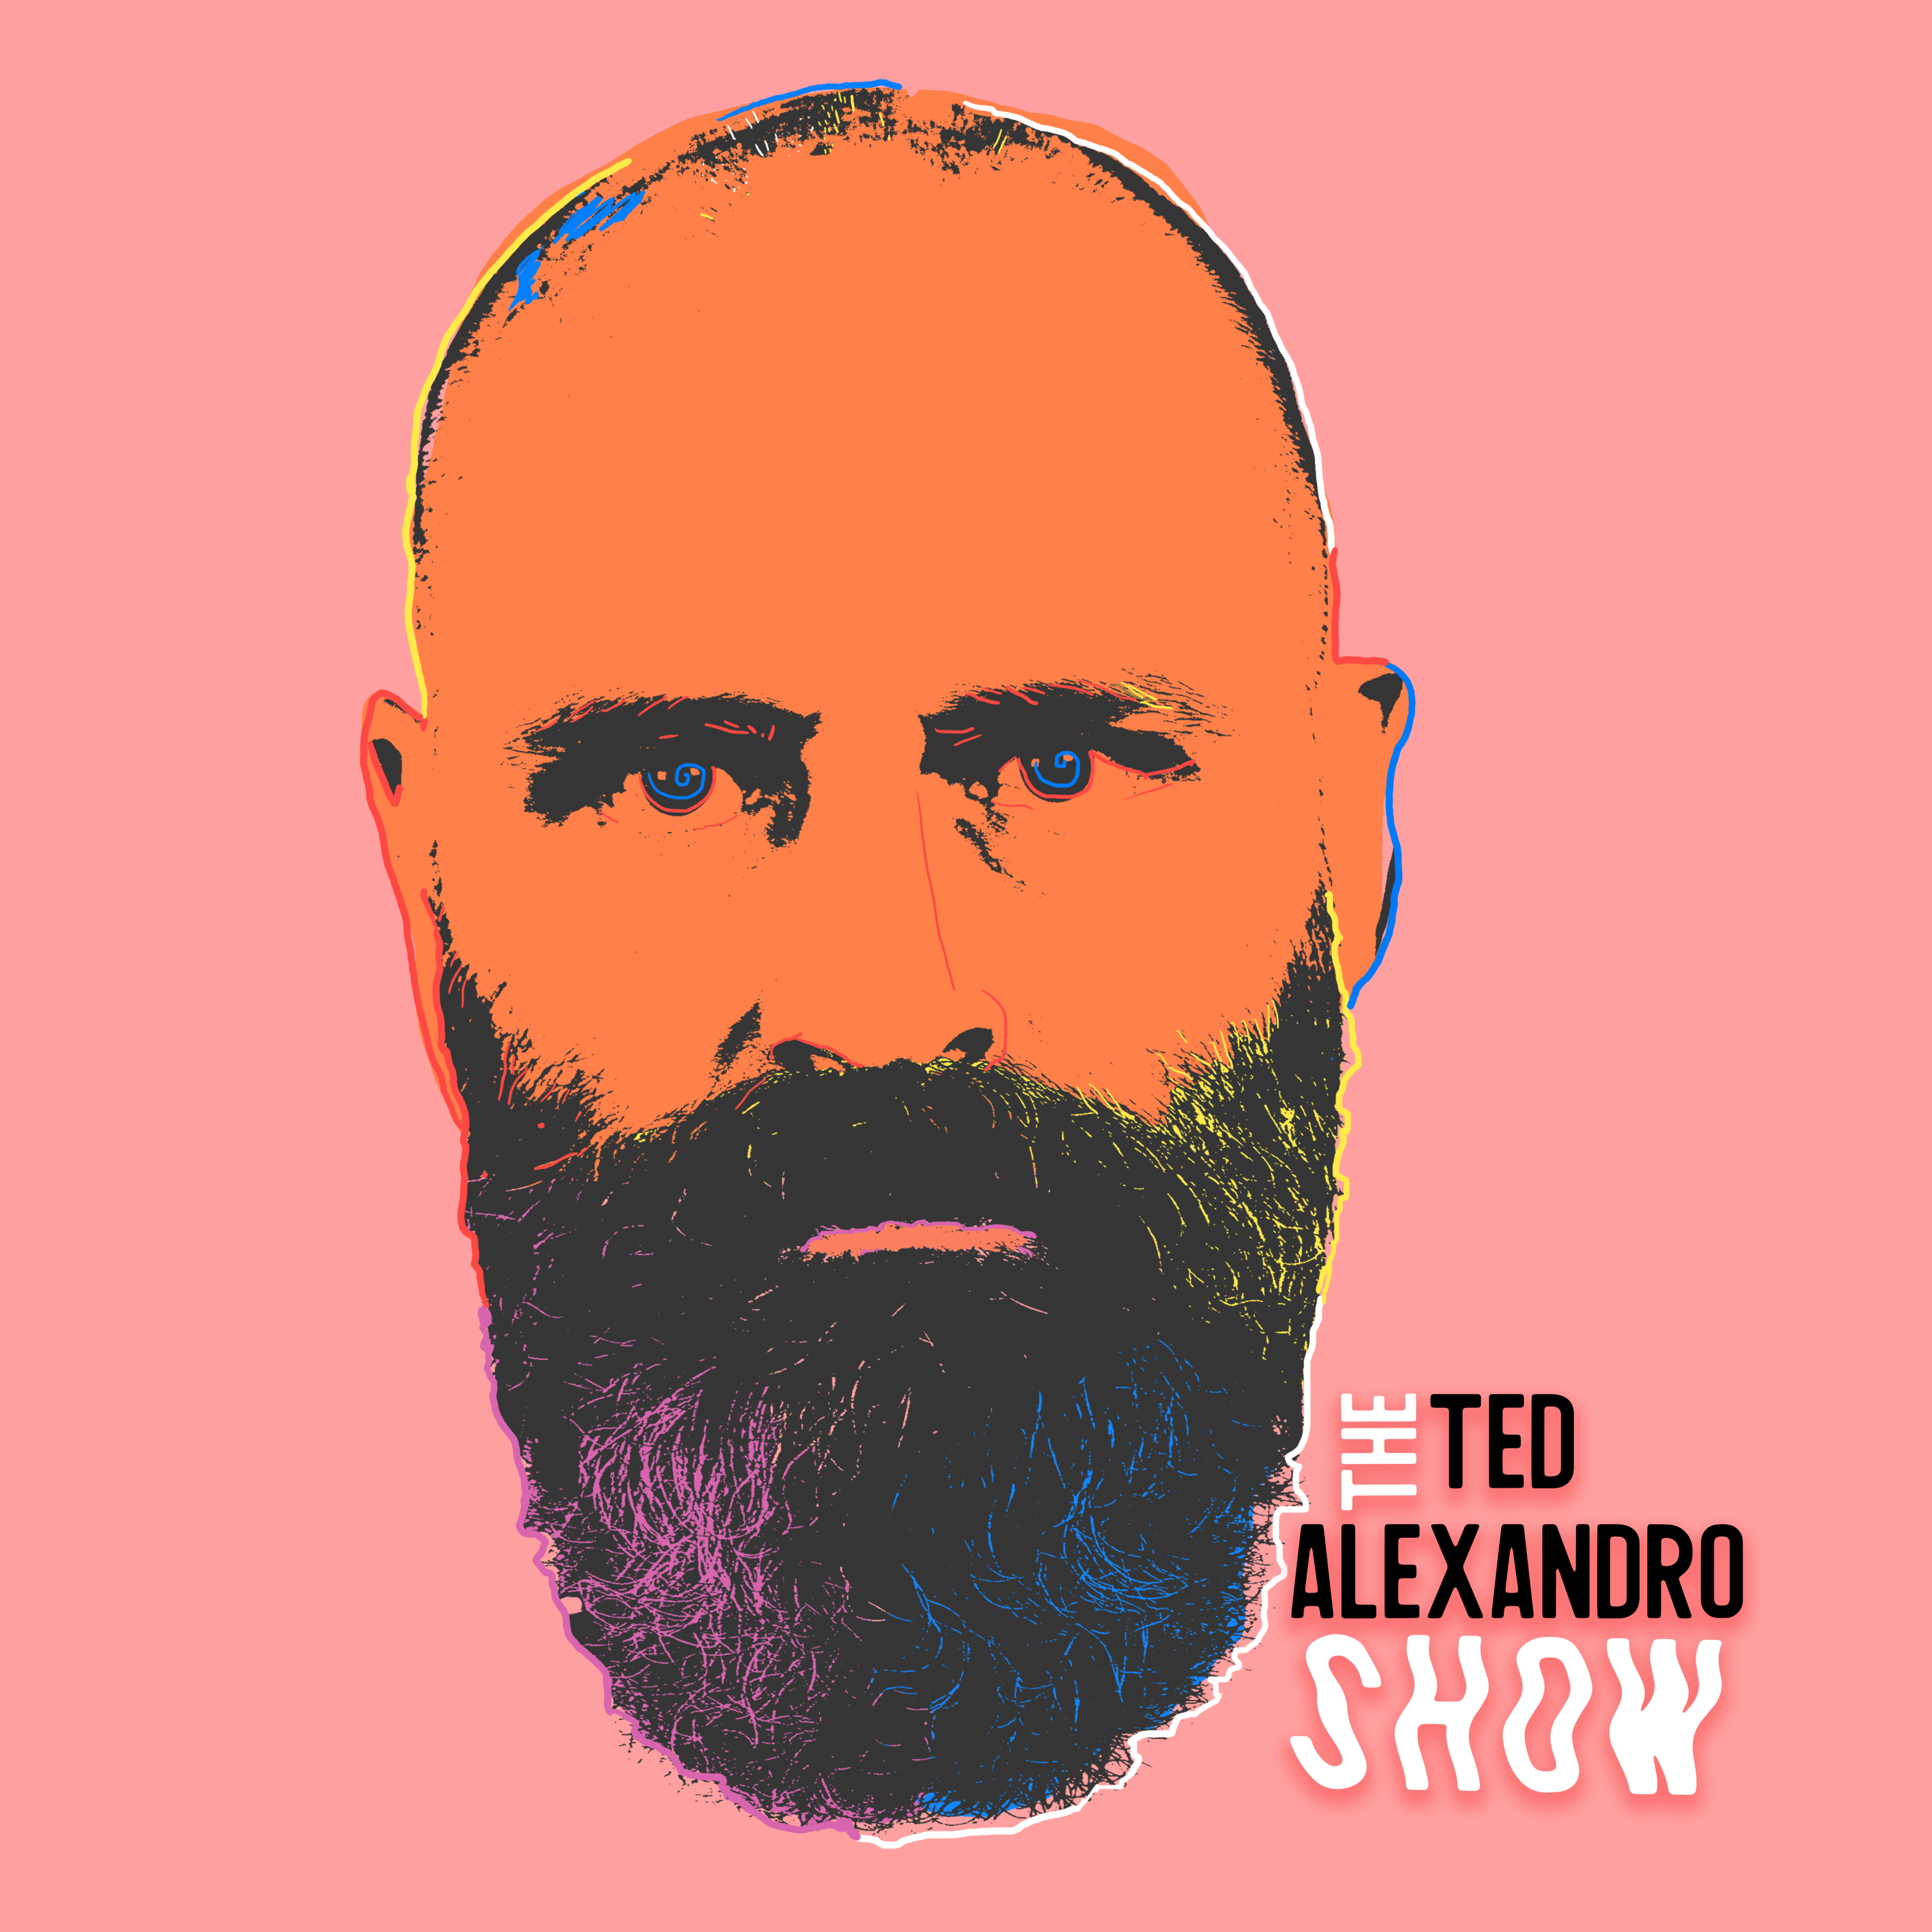 The Ted Alexandro Show with Ted Alexandro show art